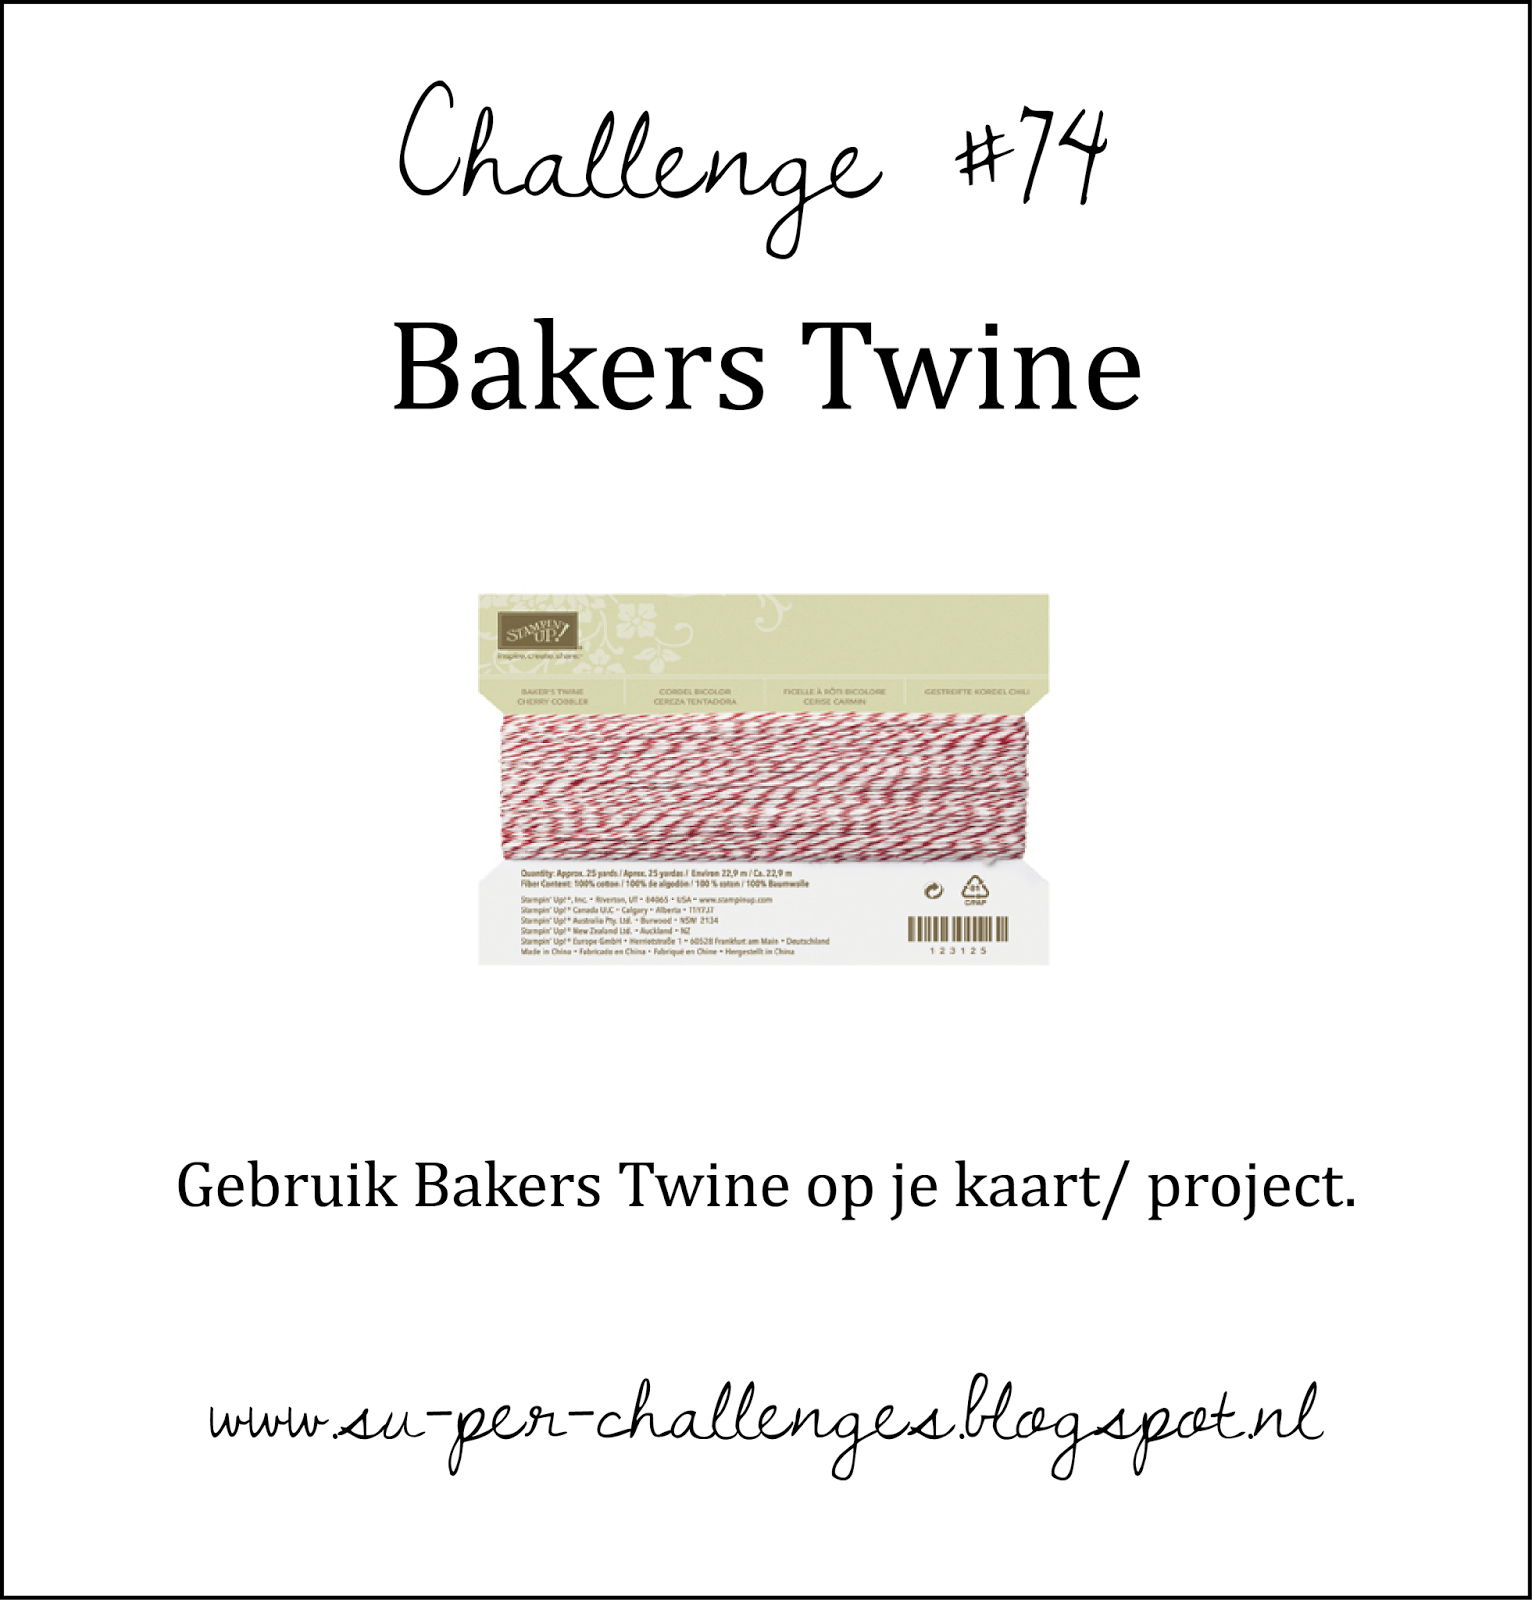 http://su-per-challenges.blogspot.nl/2015/01/challenge-74-bakers-twine.html